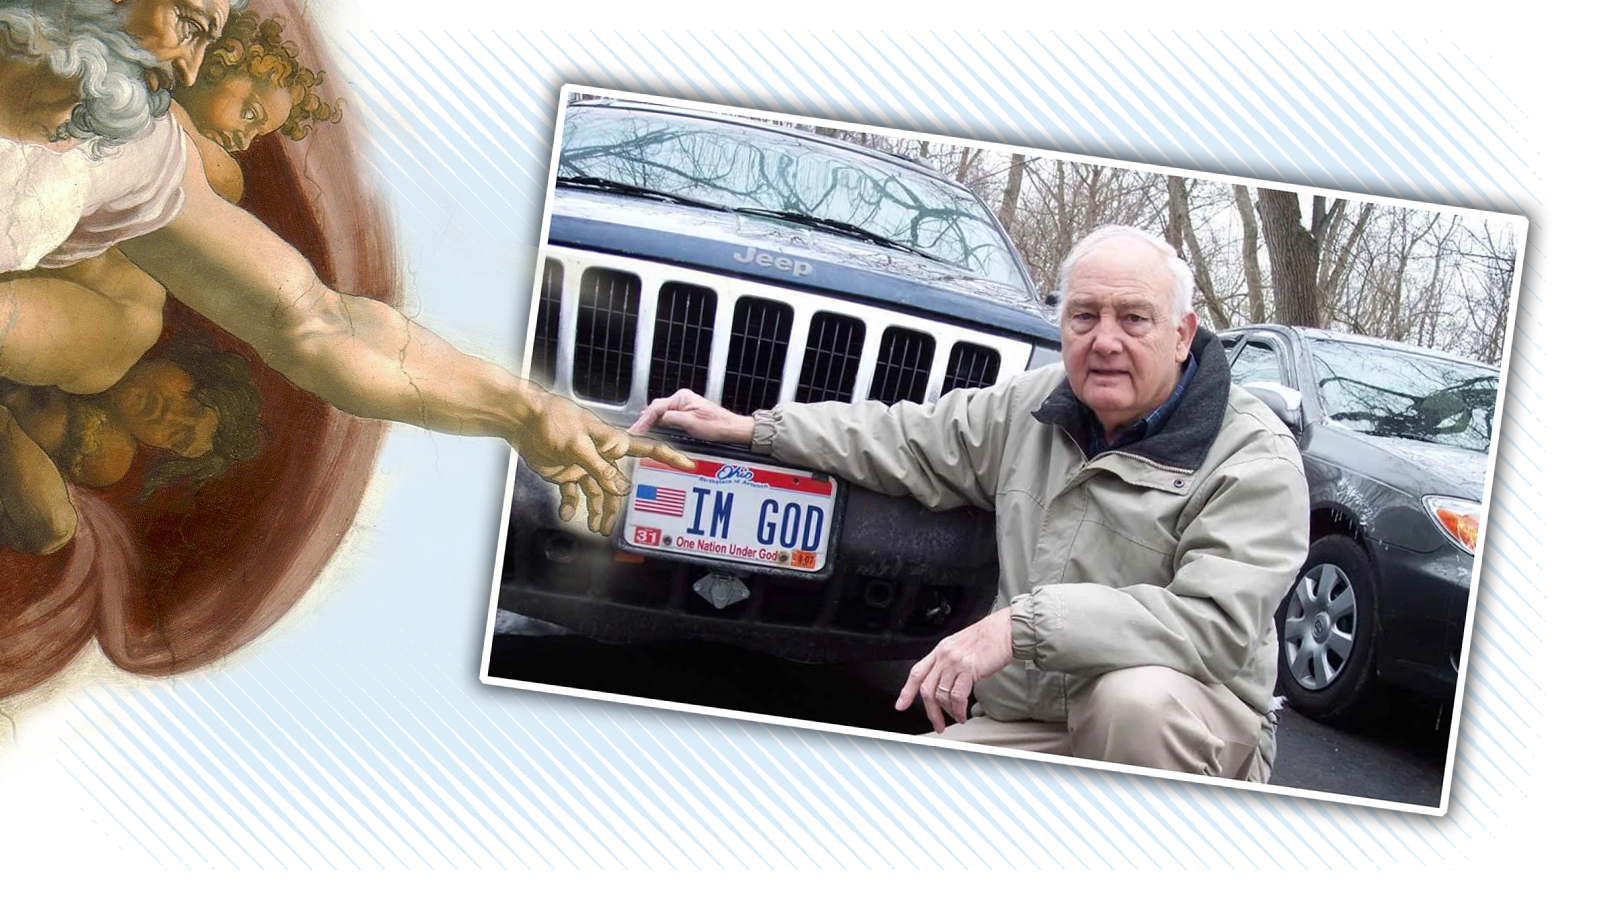 U.S. Court Says It's OK To Have A Licence Plate That Proclaims IM GOD In Kentucky